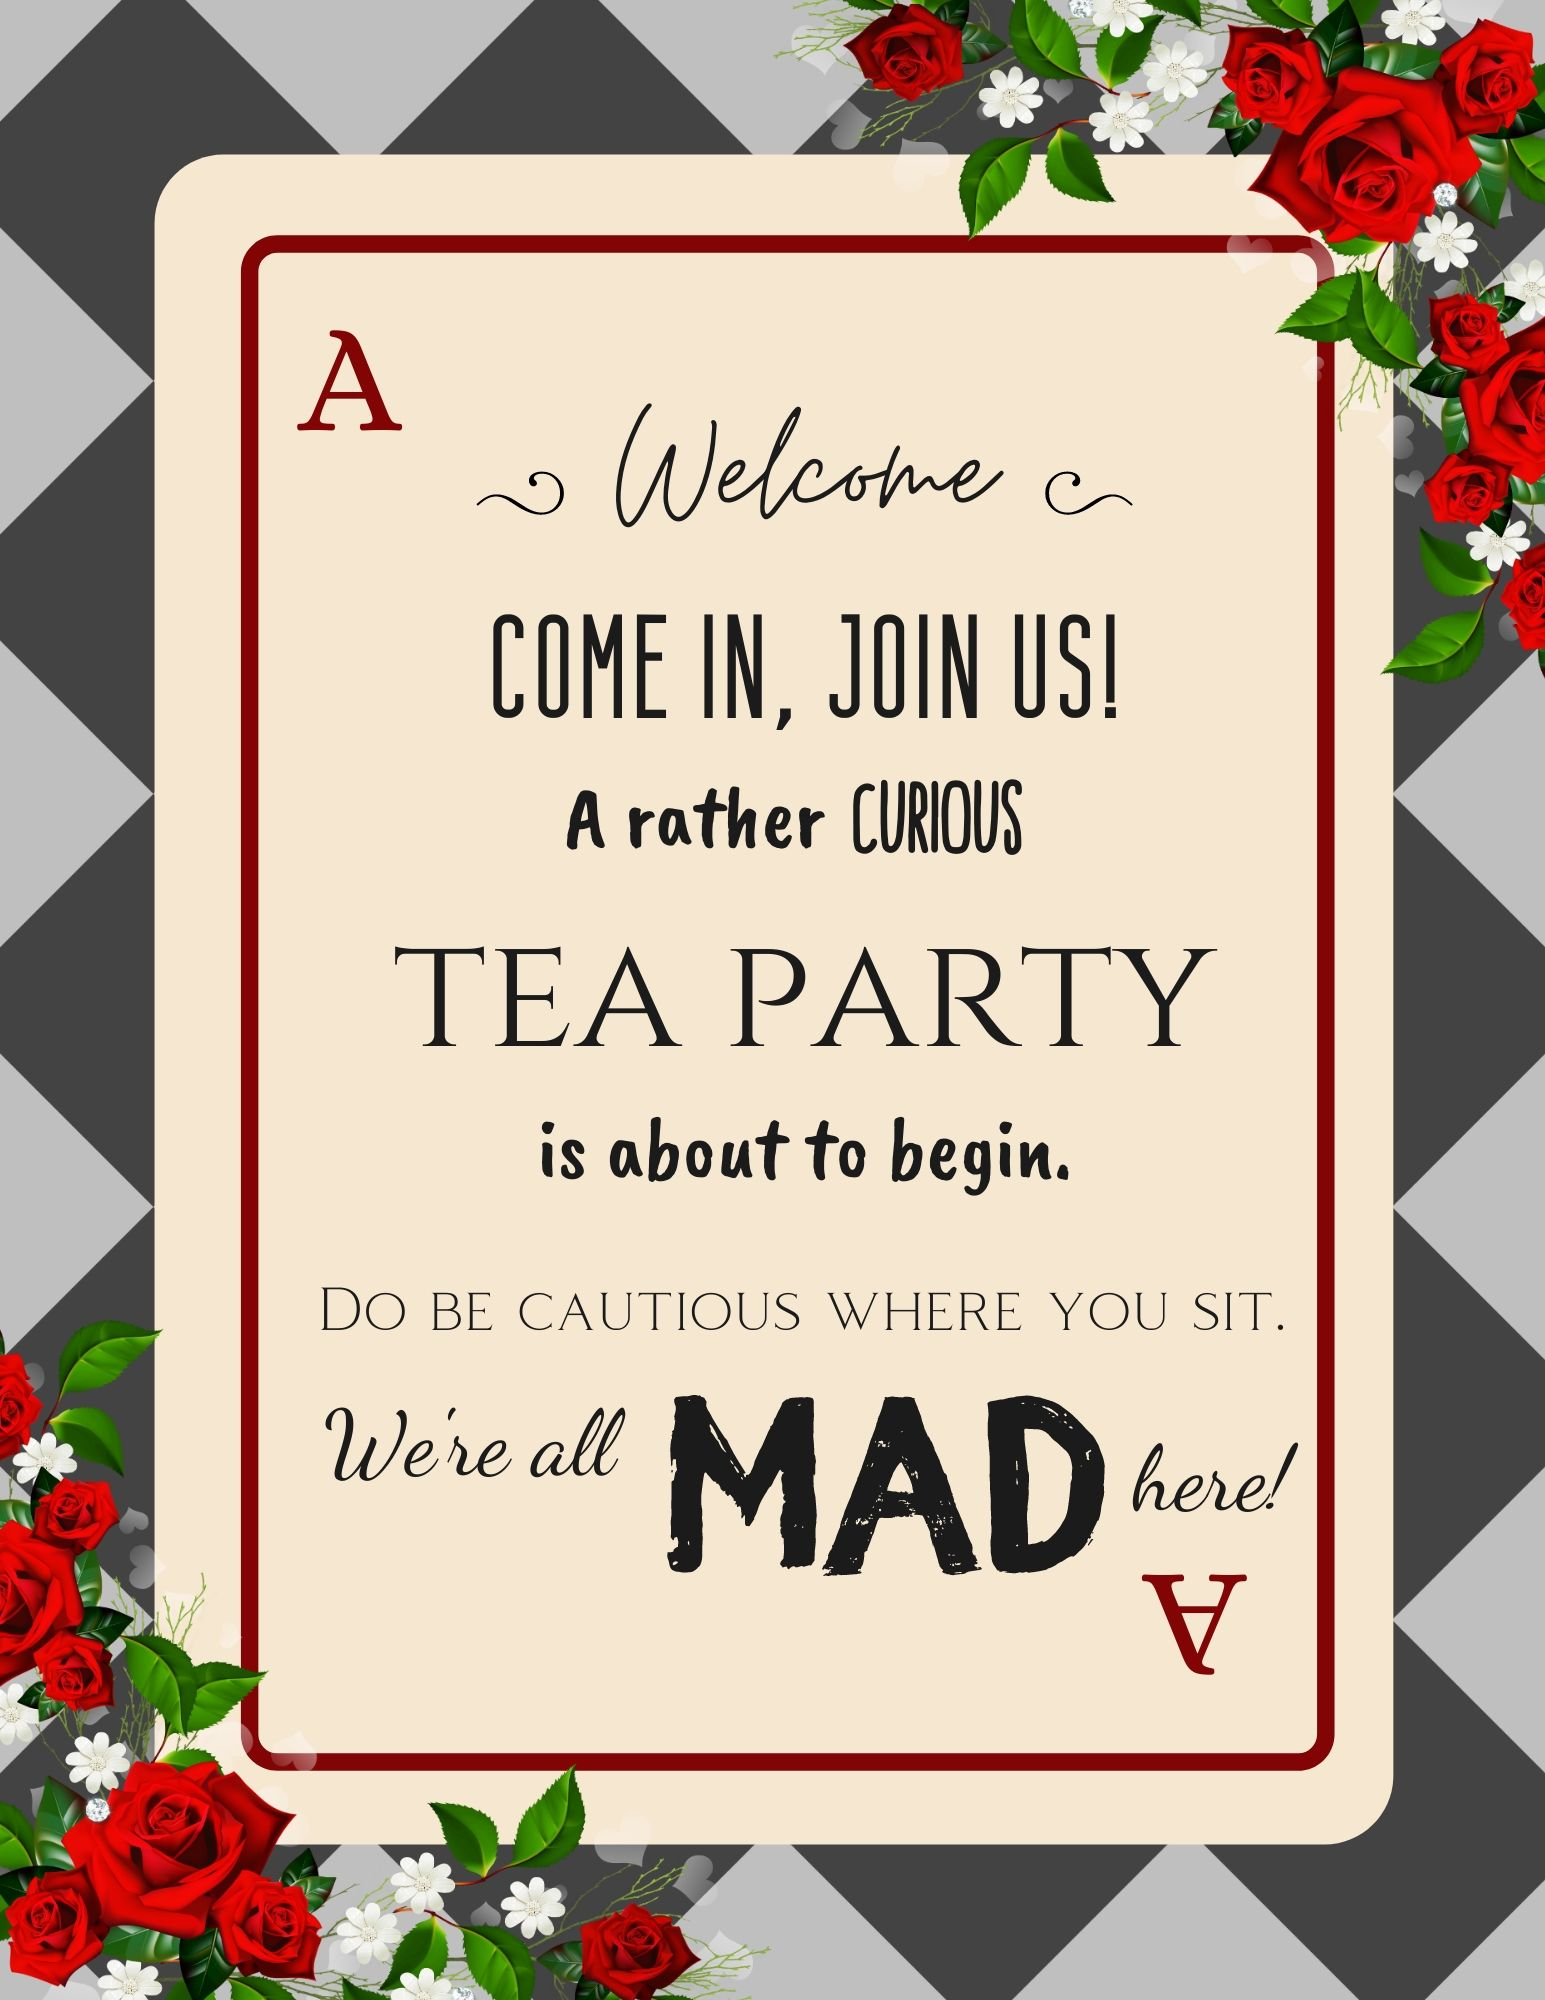 """A welcome sign that says, """"Welcome! Come in, join us! A rather curious tea party is about to begin. Do be cautious where you sit. We are all mad here!"""""""